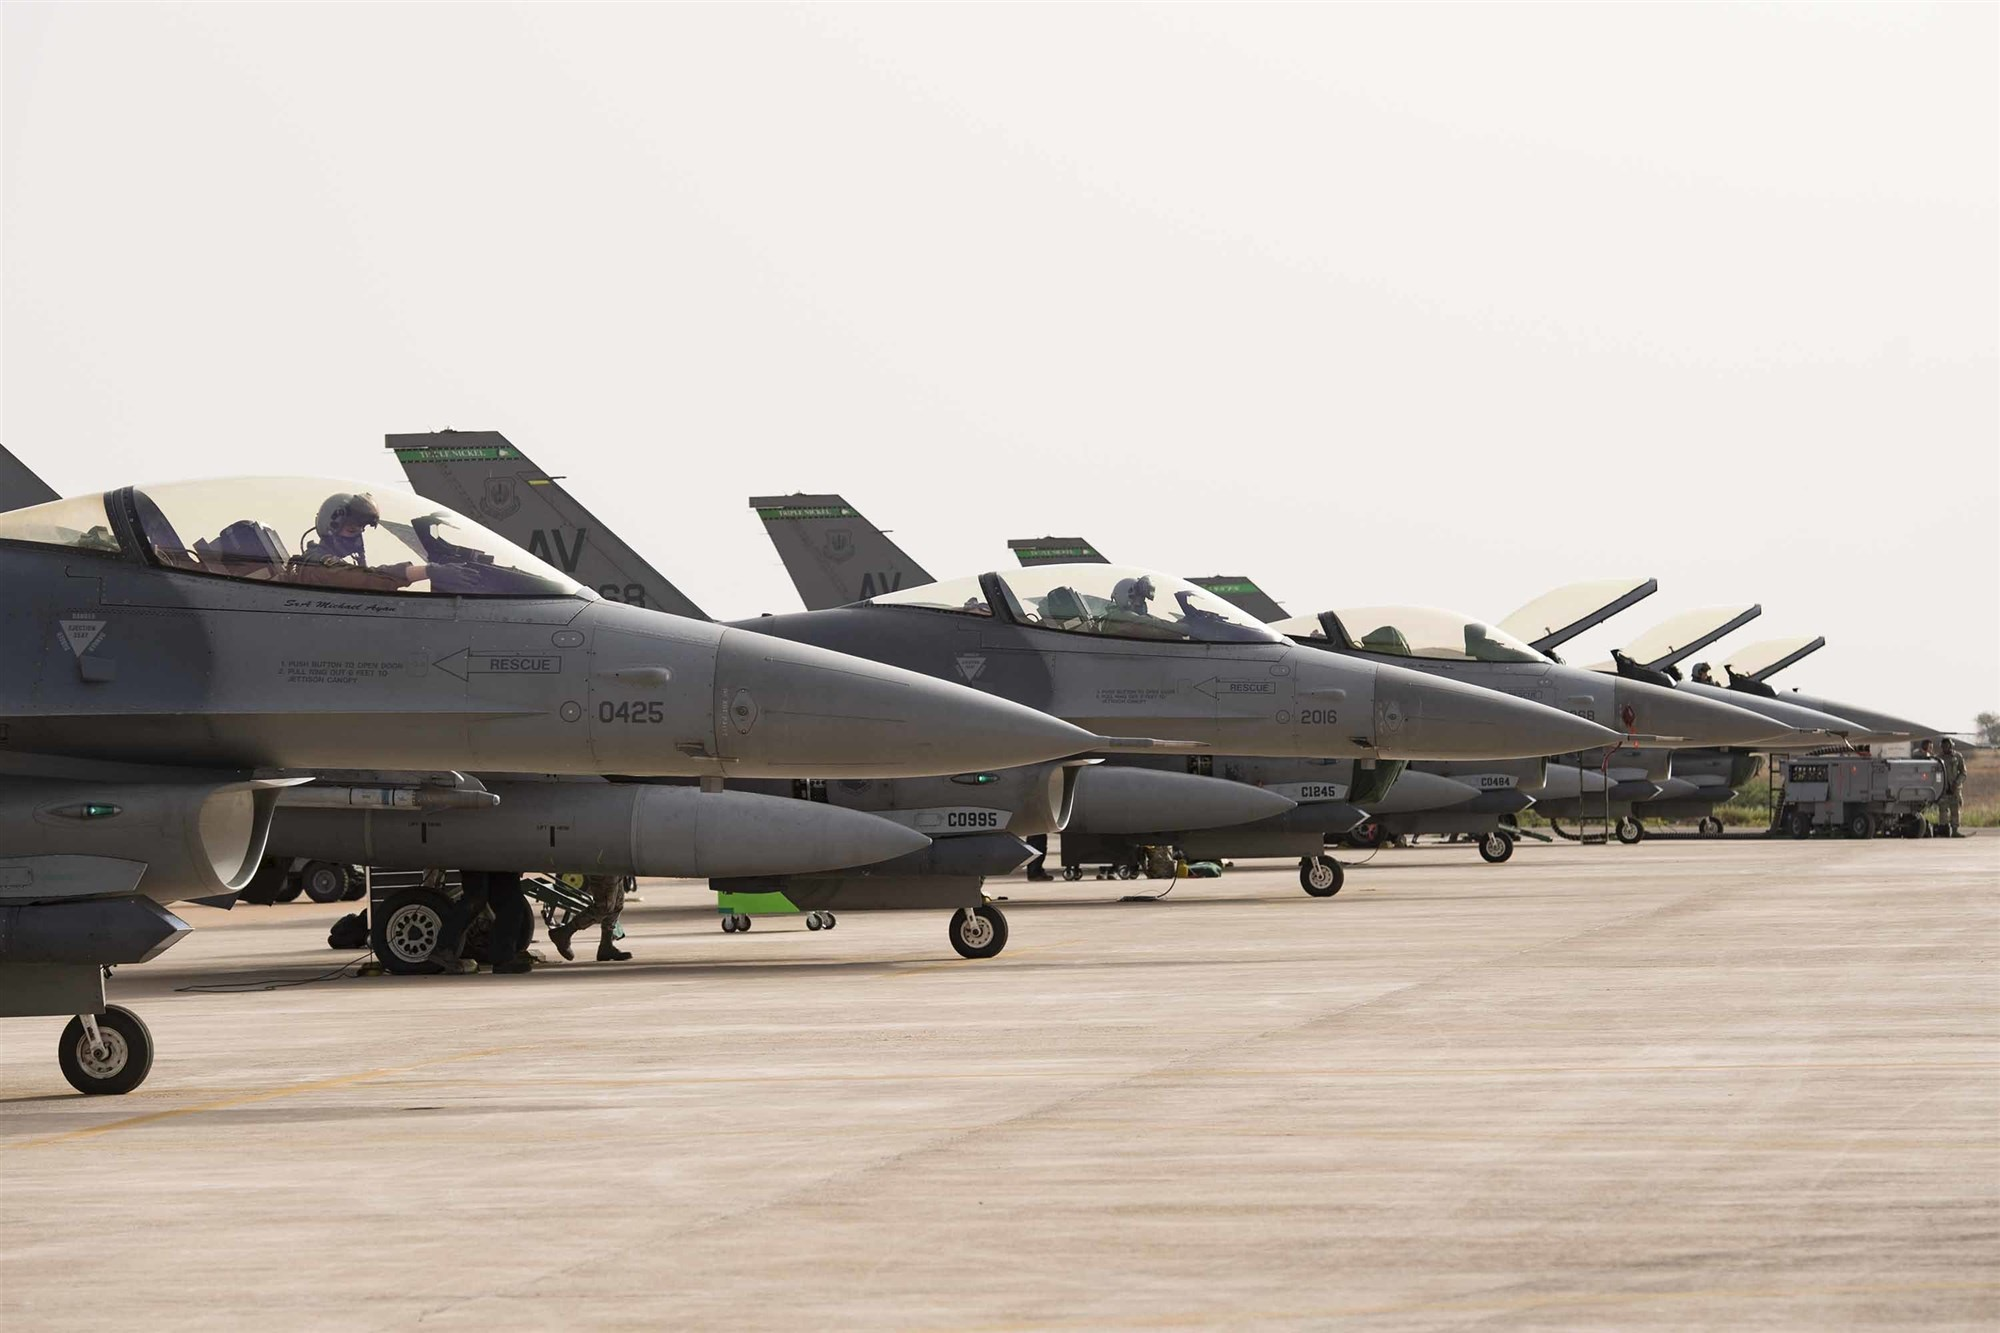 F-16C Fighting Falcons from the 555th Expeditionary Fighter Squadron rest on the flight line during exercise African Lion 2019 at Ben Guerir Air Base, Morocco, March 25, 2019. The squadron deployed out of the 31st Fighter Wing, Avaino Air Base, Italy. African Lion 2019 is a Chairman of the Joint Chiefs of Staff-sponsored, U.S. Africa Command-scheduled, U.S. Marine Corps Forces Europe and Africa-led, joint and combined exercise conducted in the Kingdom of Morocco with a spoke in Tunisia, and armed forces participants in from Canada, France, Senegal, Spain, and the United Kingdom. (U.S. Air Force photo by Staff Sgt. Ceaira Tinsley)